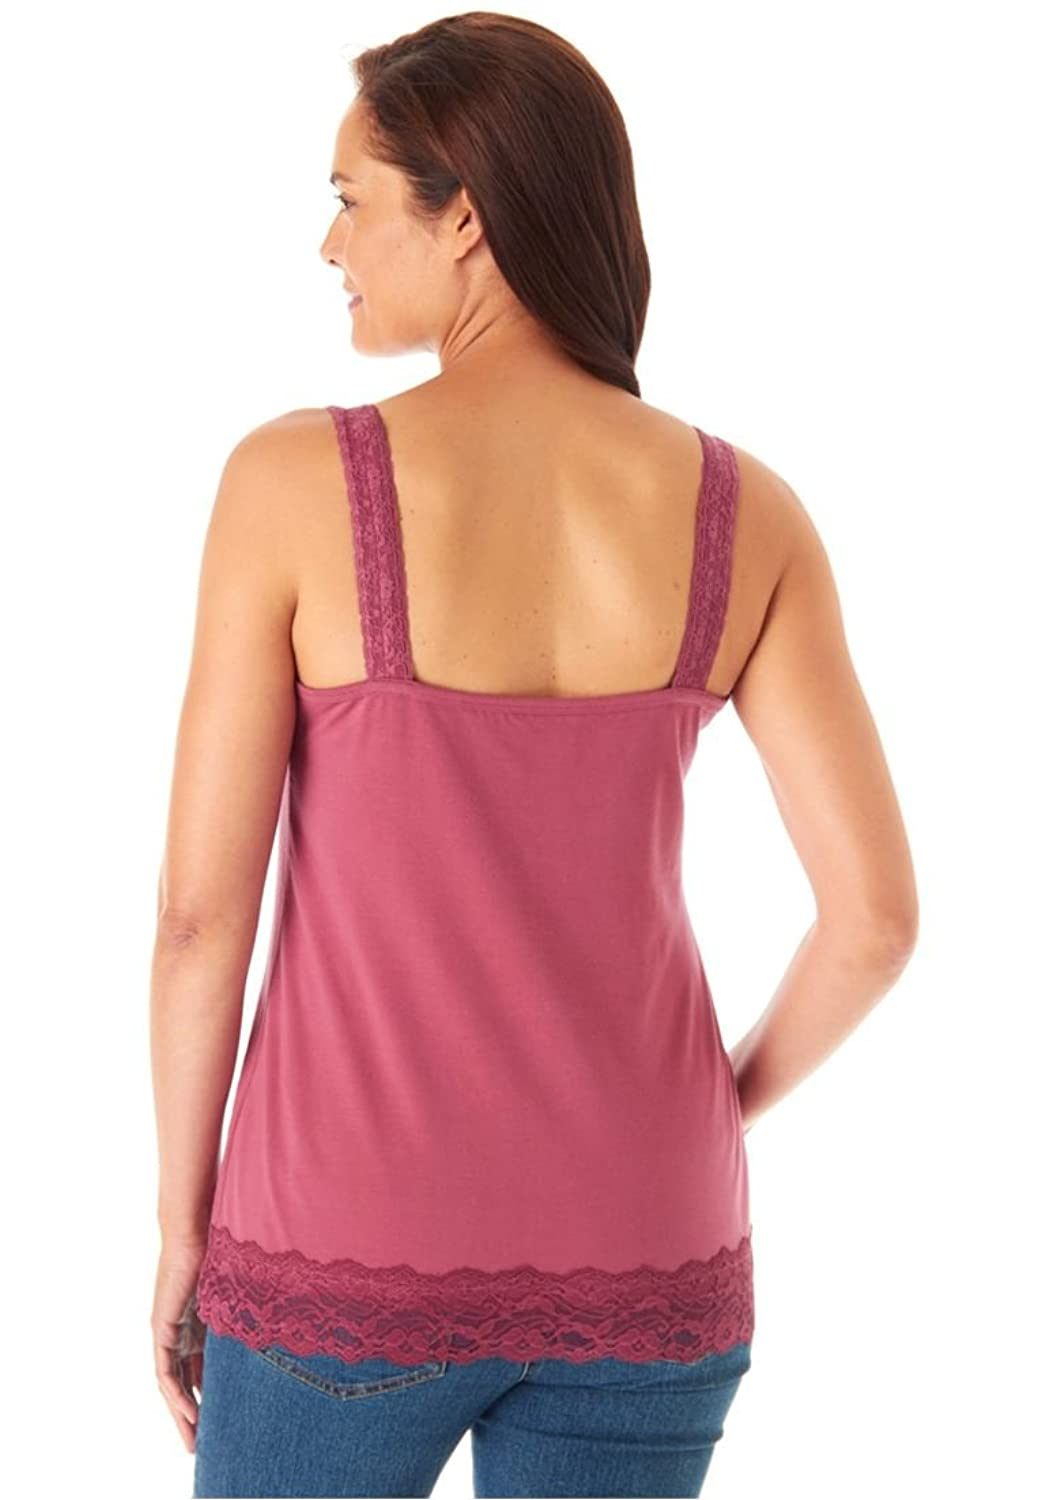 Women's Plus Size Tank Top In Soft Stretch Knit Is Trimmed In Feminine Lace